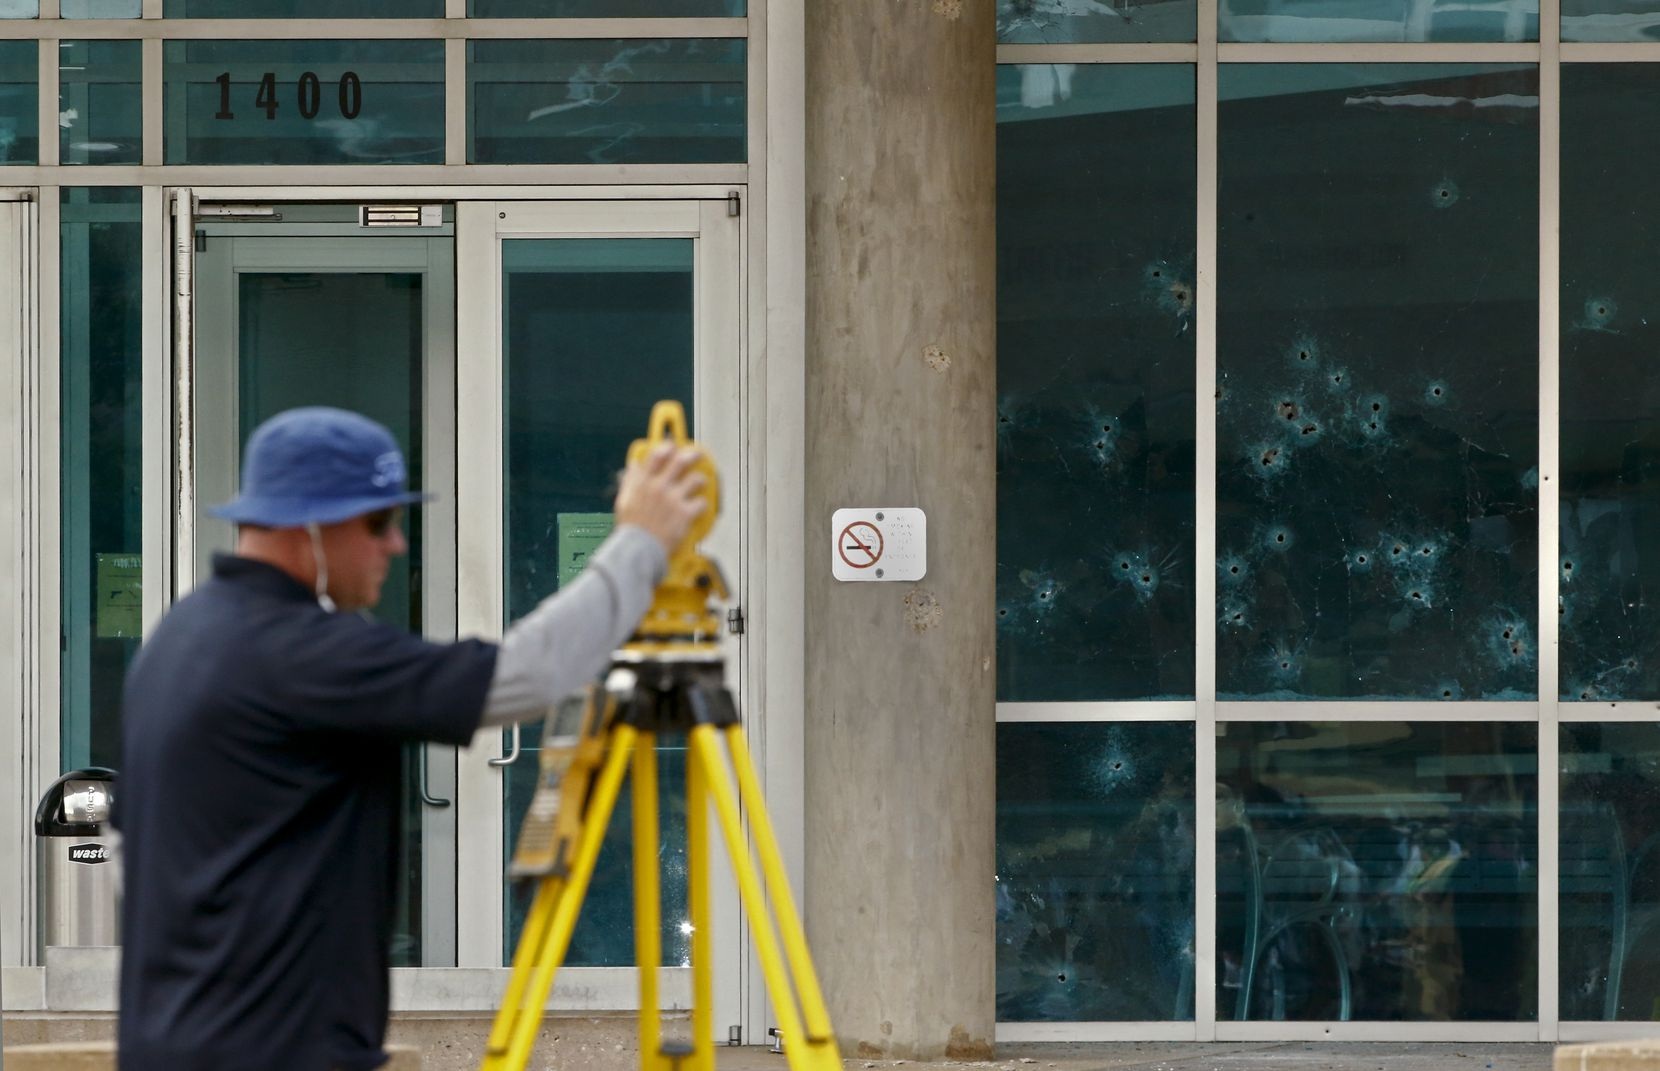 Bill Smith with the FBI uses a 3d imagingin system to map out the crime scene during a guided tour of the path of a shooting and bombing at Dallas Police Department's headquartes on Lamar in Dallas Saturday June 13, 2015.. (Nathan Hunsinger/The Dallas Morning News)